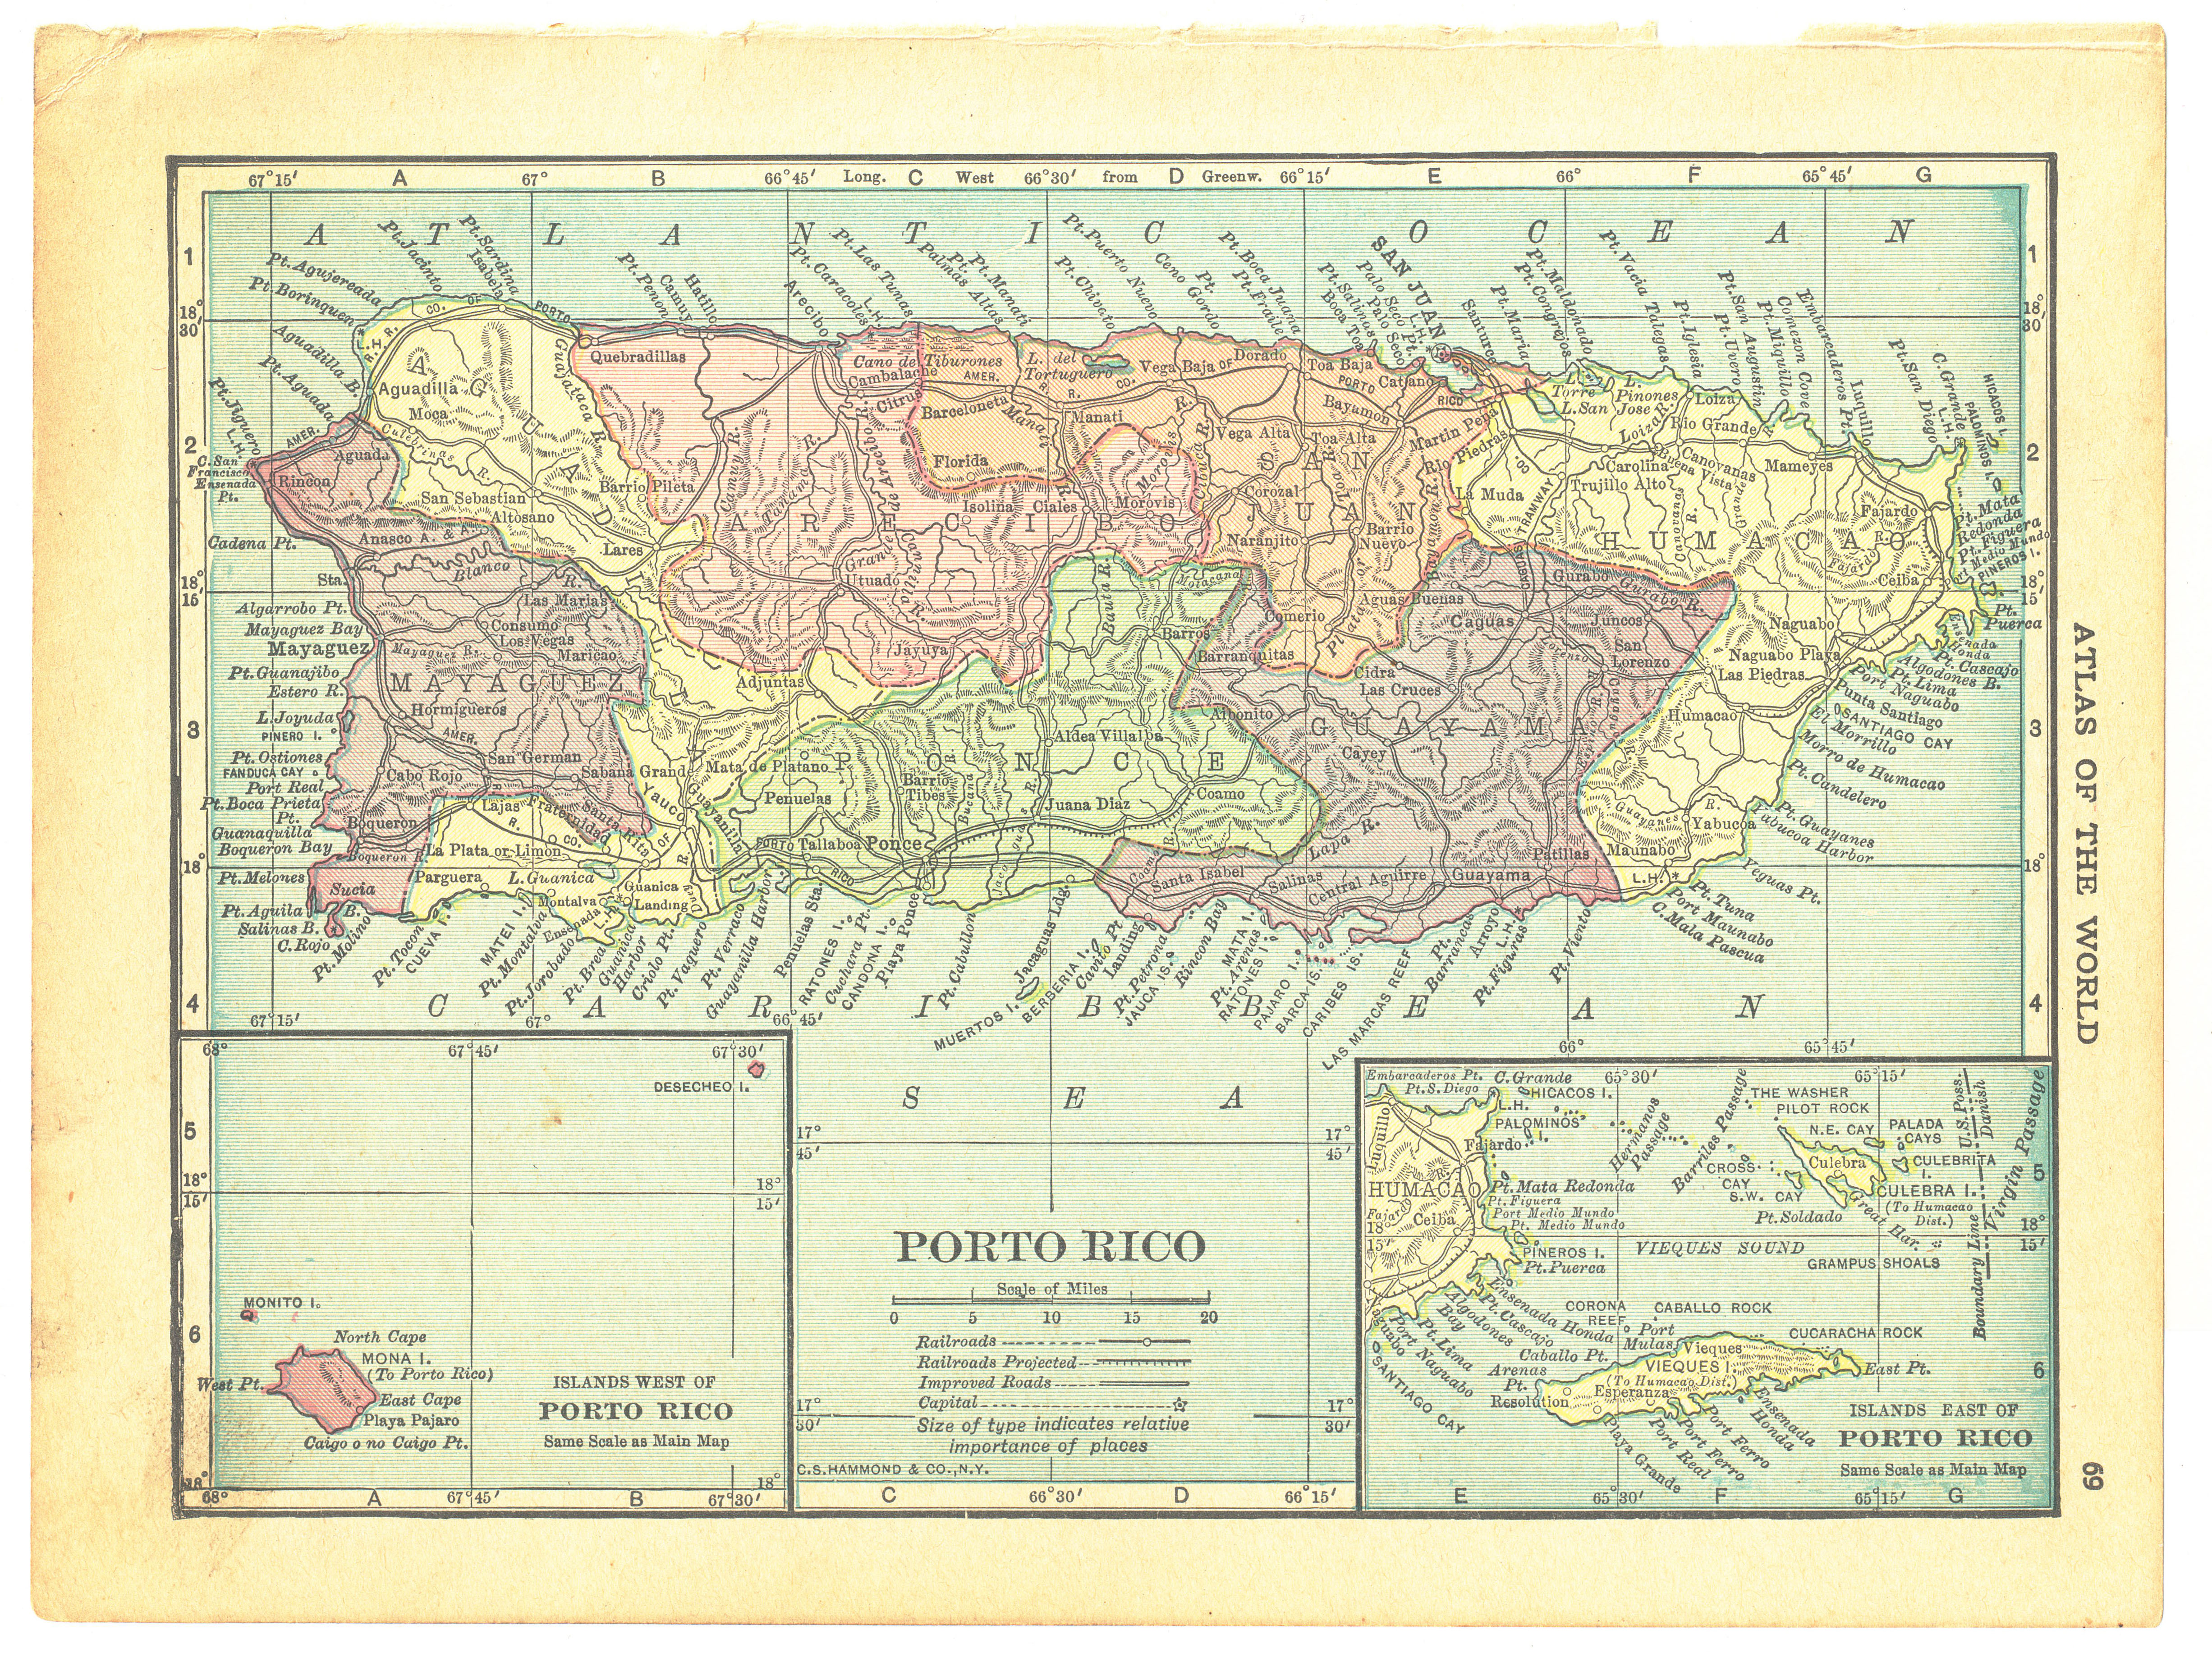 Details zu Spokesman Handy Atlas Vintage Map Pages (Puerto Rico on one side  - Cuba - Can...